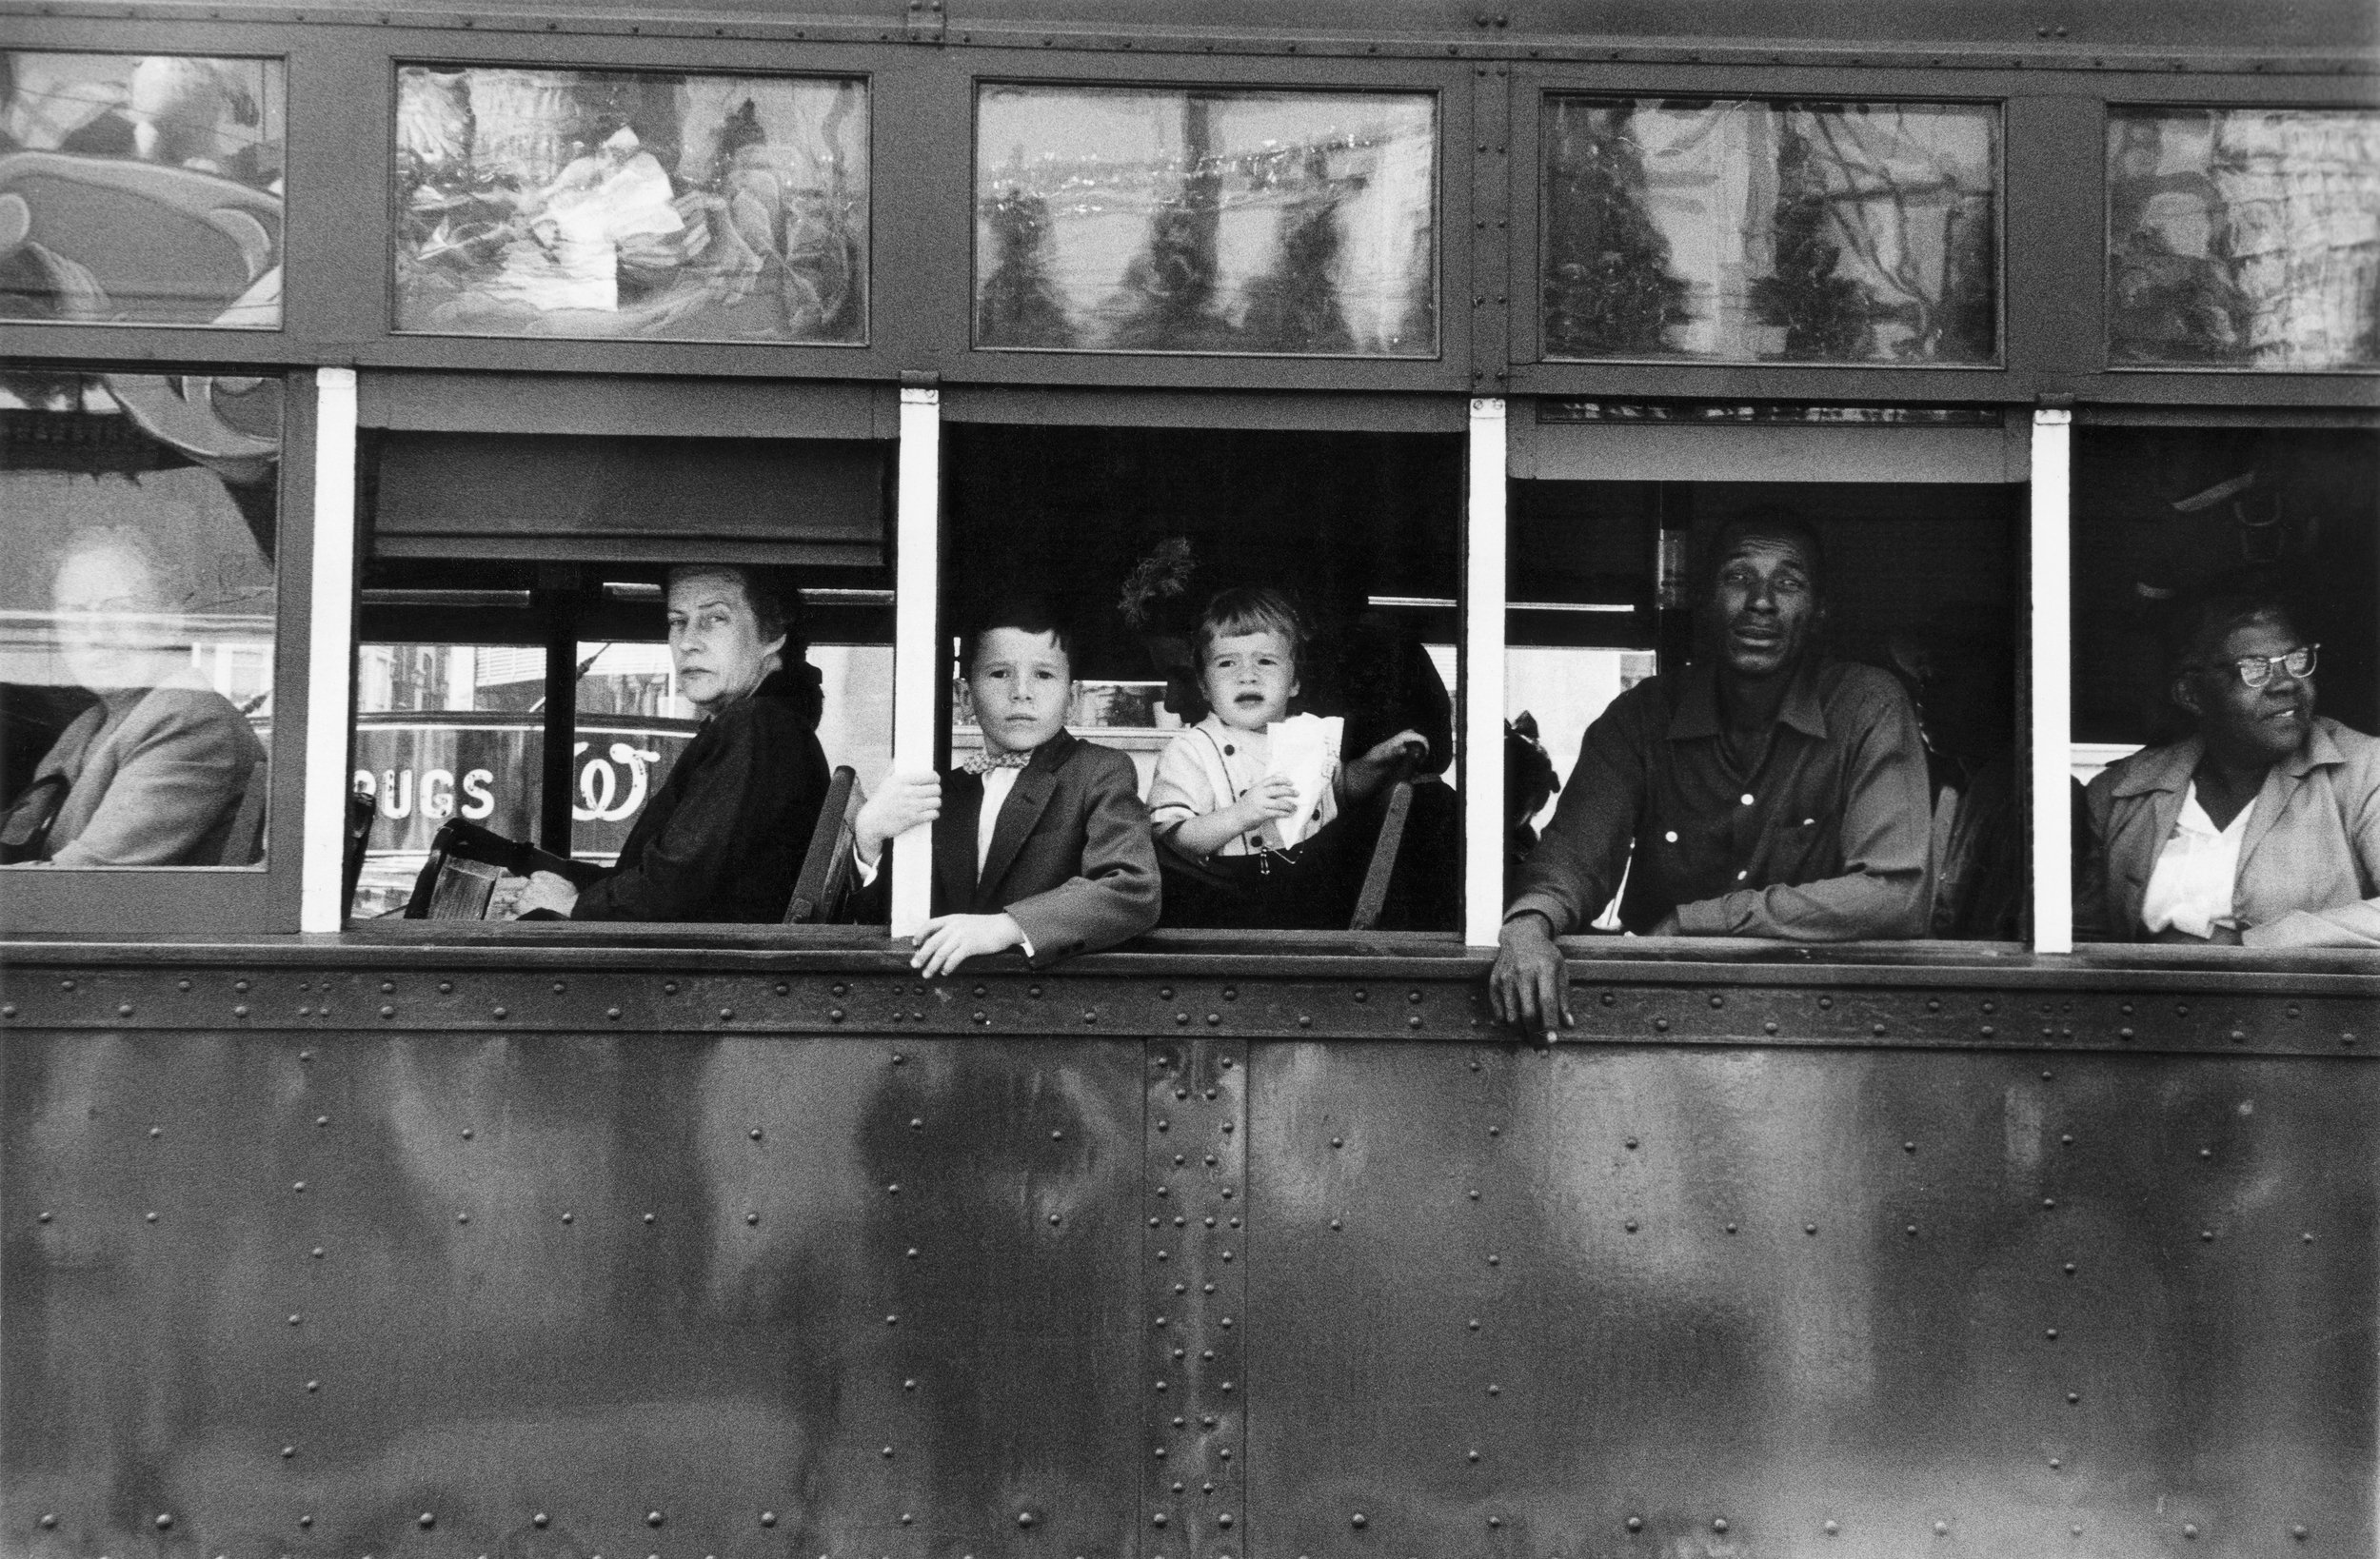 Trolley – New Orleans, 1955 © Robert Frank from The Americans, courtesy Pace/MacGill